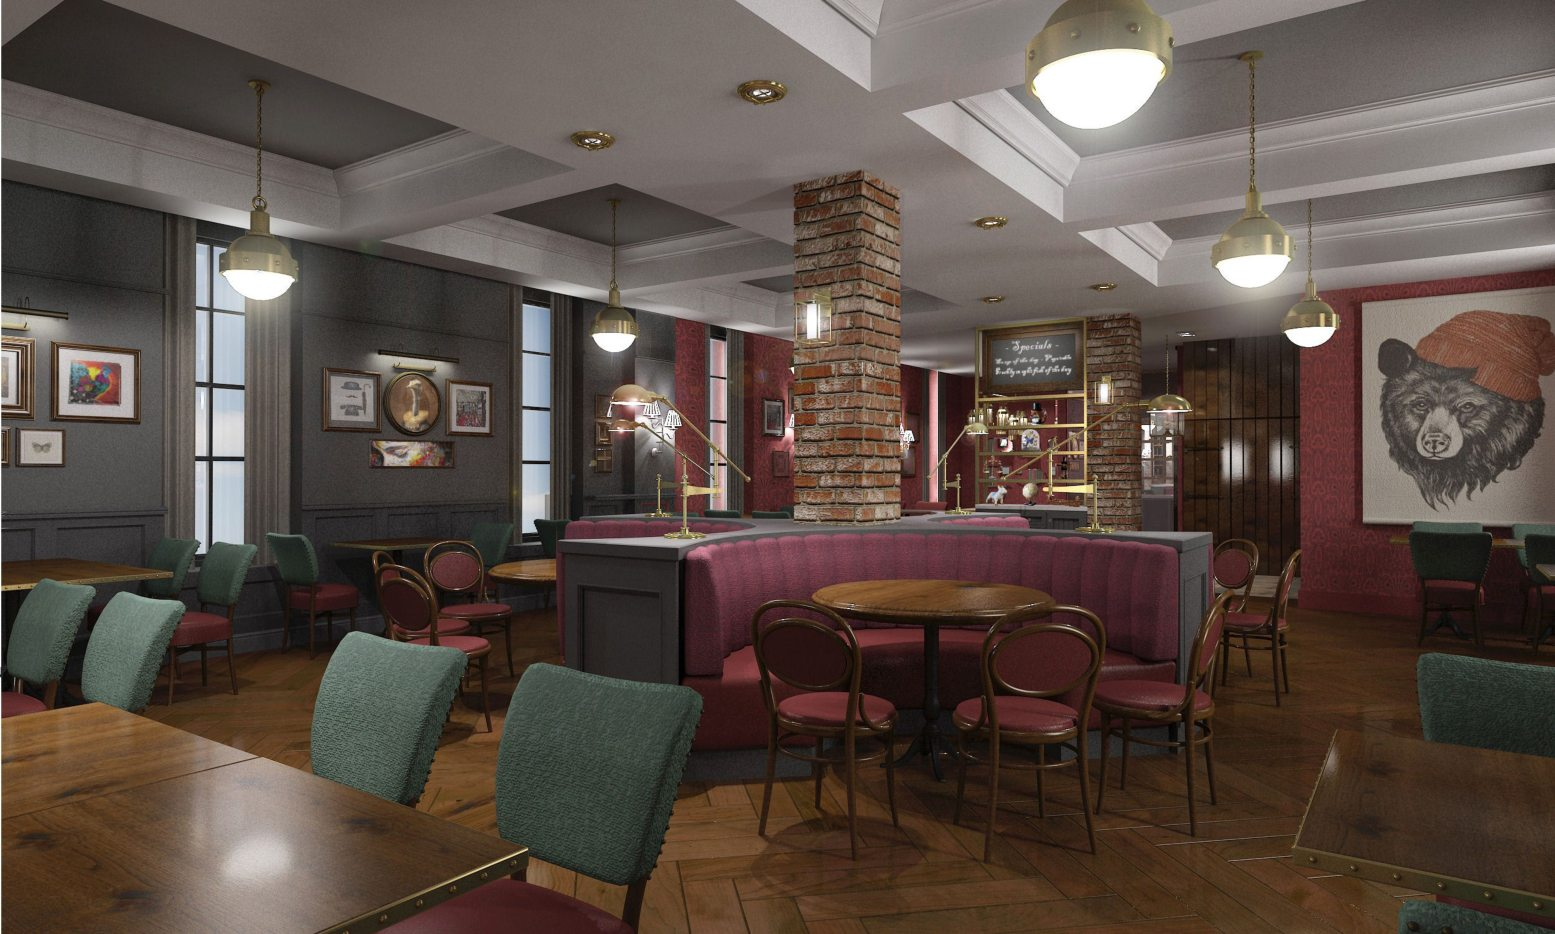 The rich colours and layered textures bring a taste of Britain to The Heritage Room